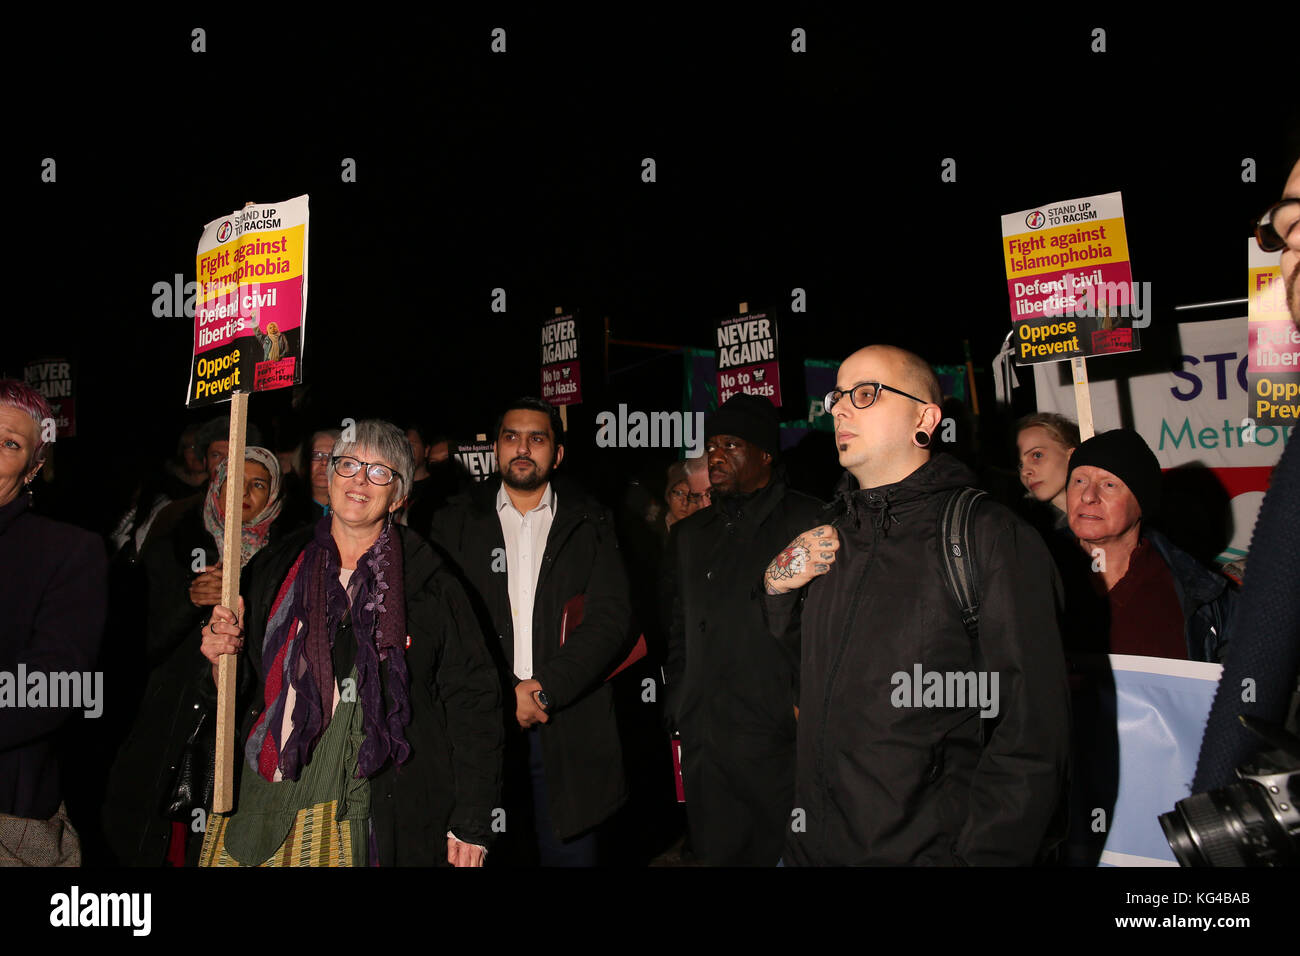 Lavoro A Manchester 2017 anti extremism stock photos & anti extremism stock images